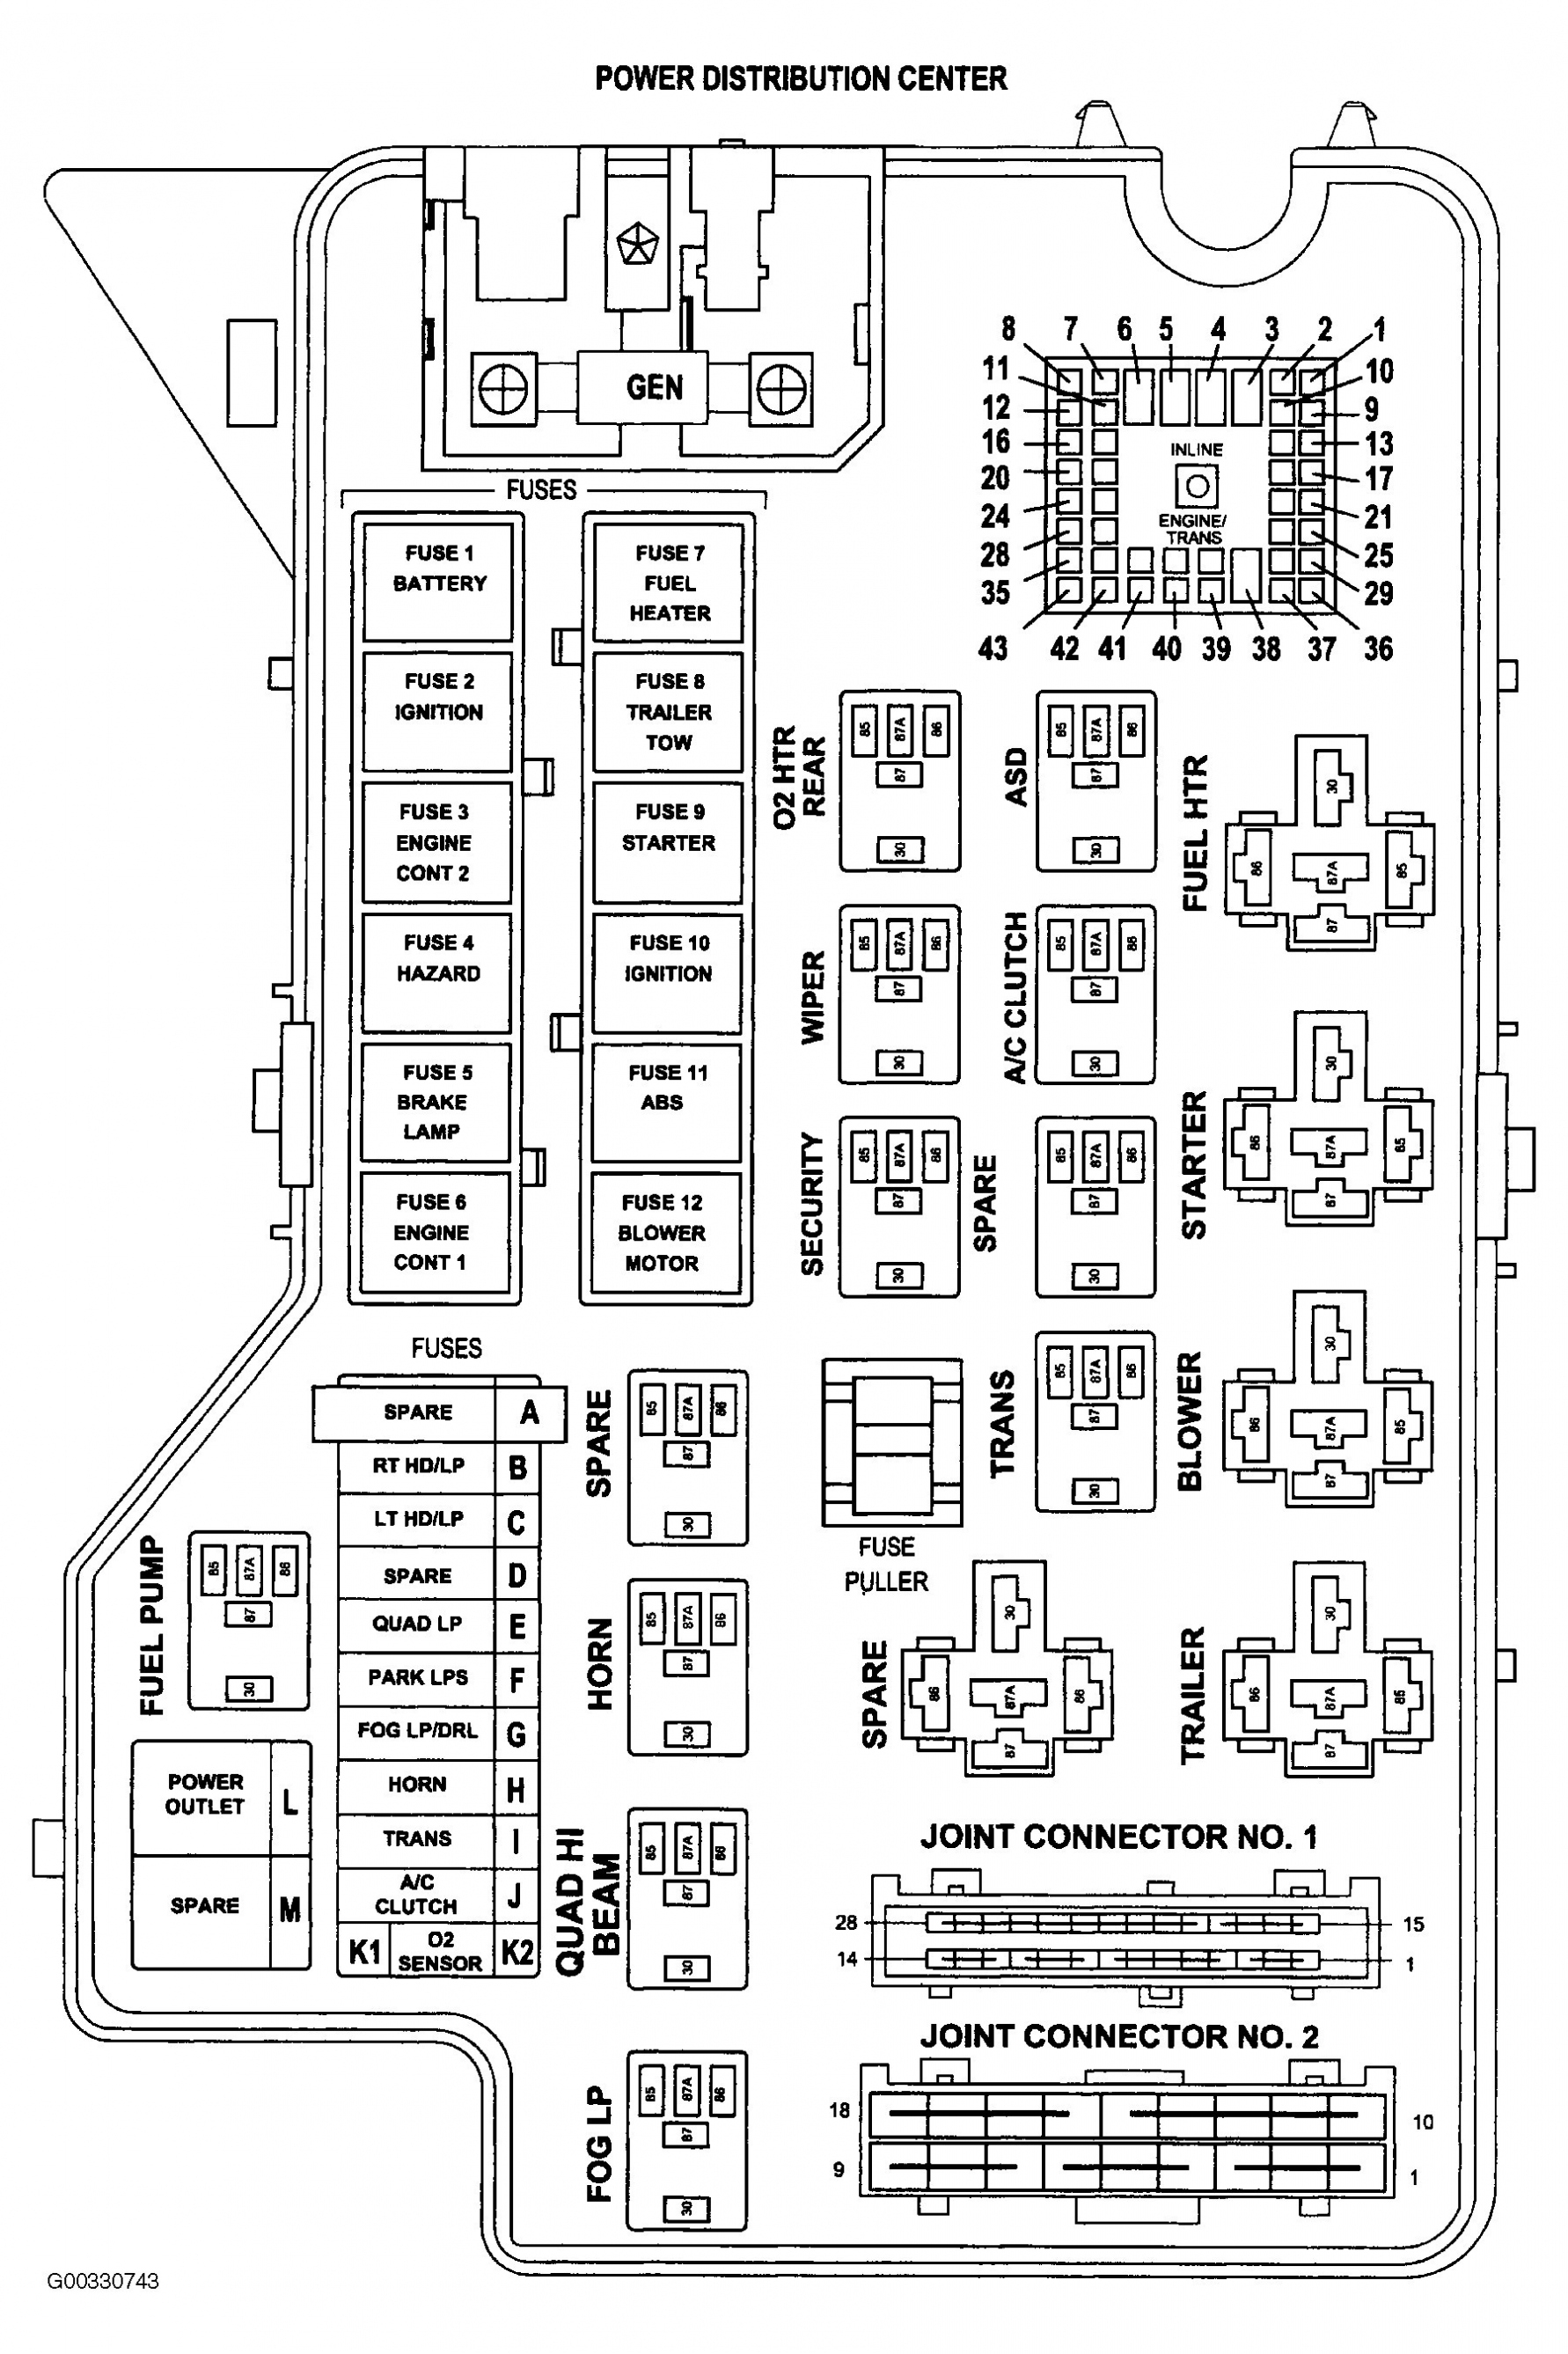 2001 Pontiac Aztek Fuse Box Diagram. 0086a fuse box